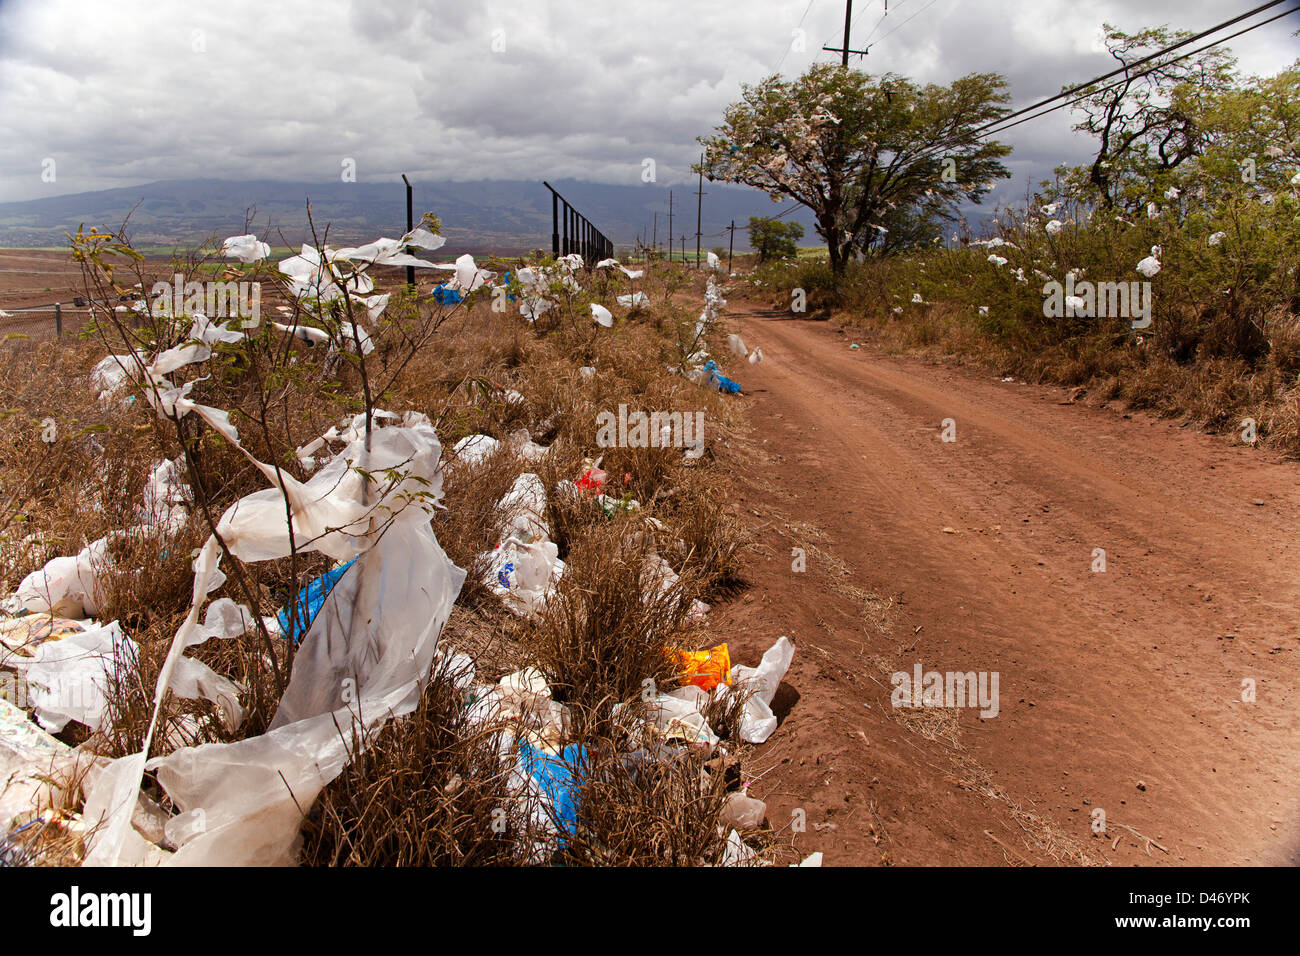 Scrubs and trees filled with plastic bags, down wind from a landfill site on the island of Maui, Hawaii. Stock Photo